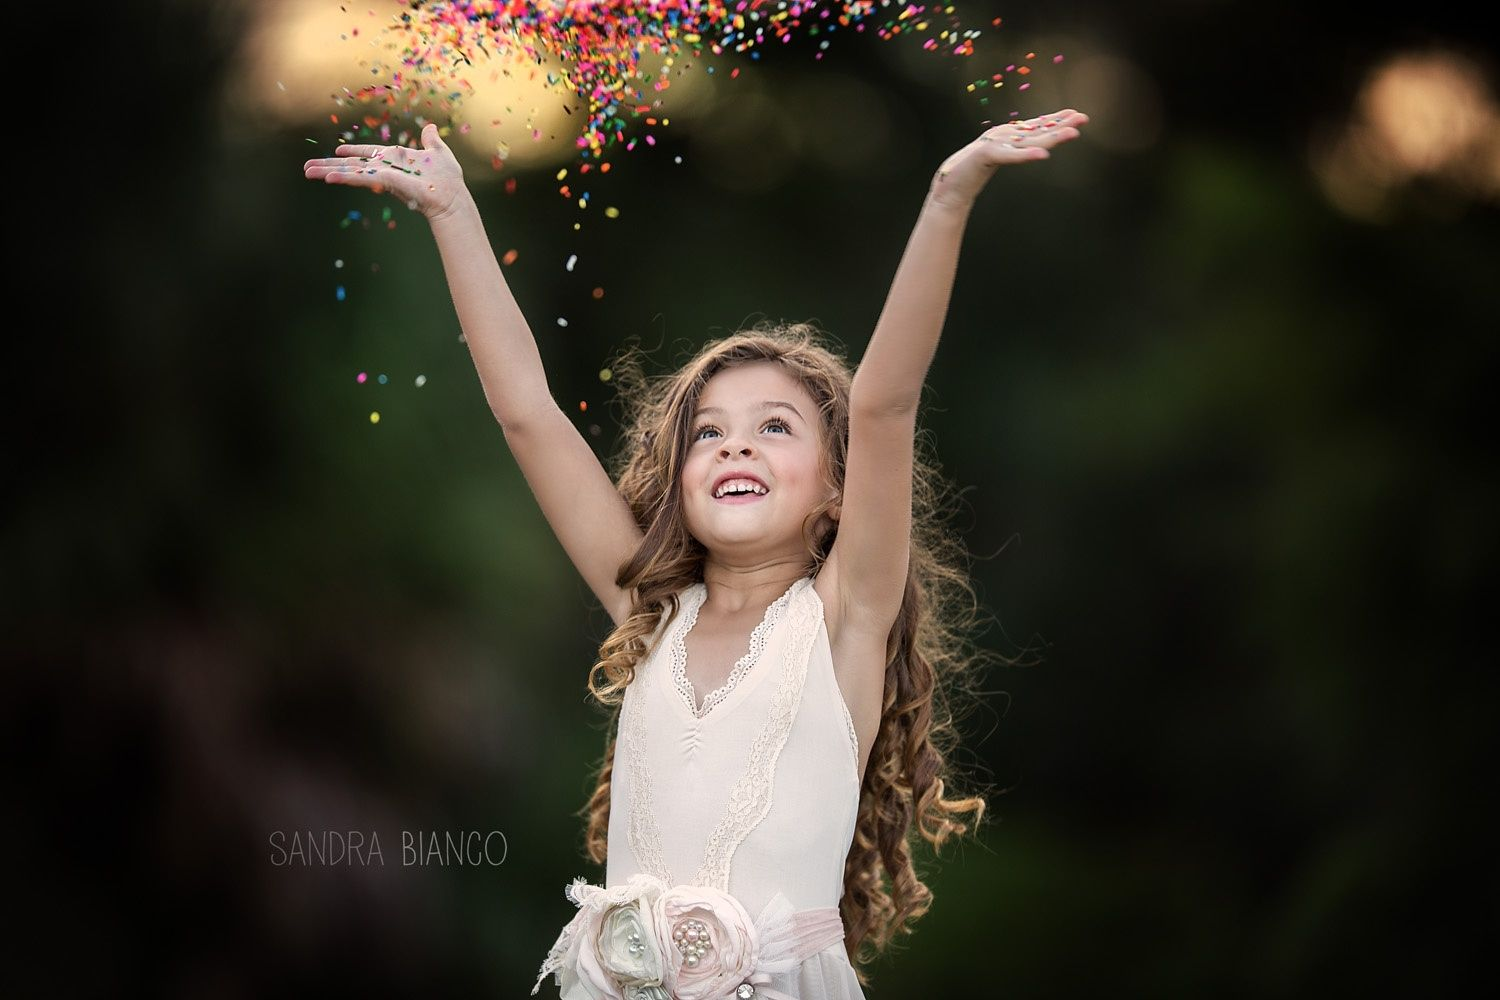 Joy by sandra bianco on 500px